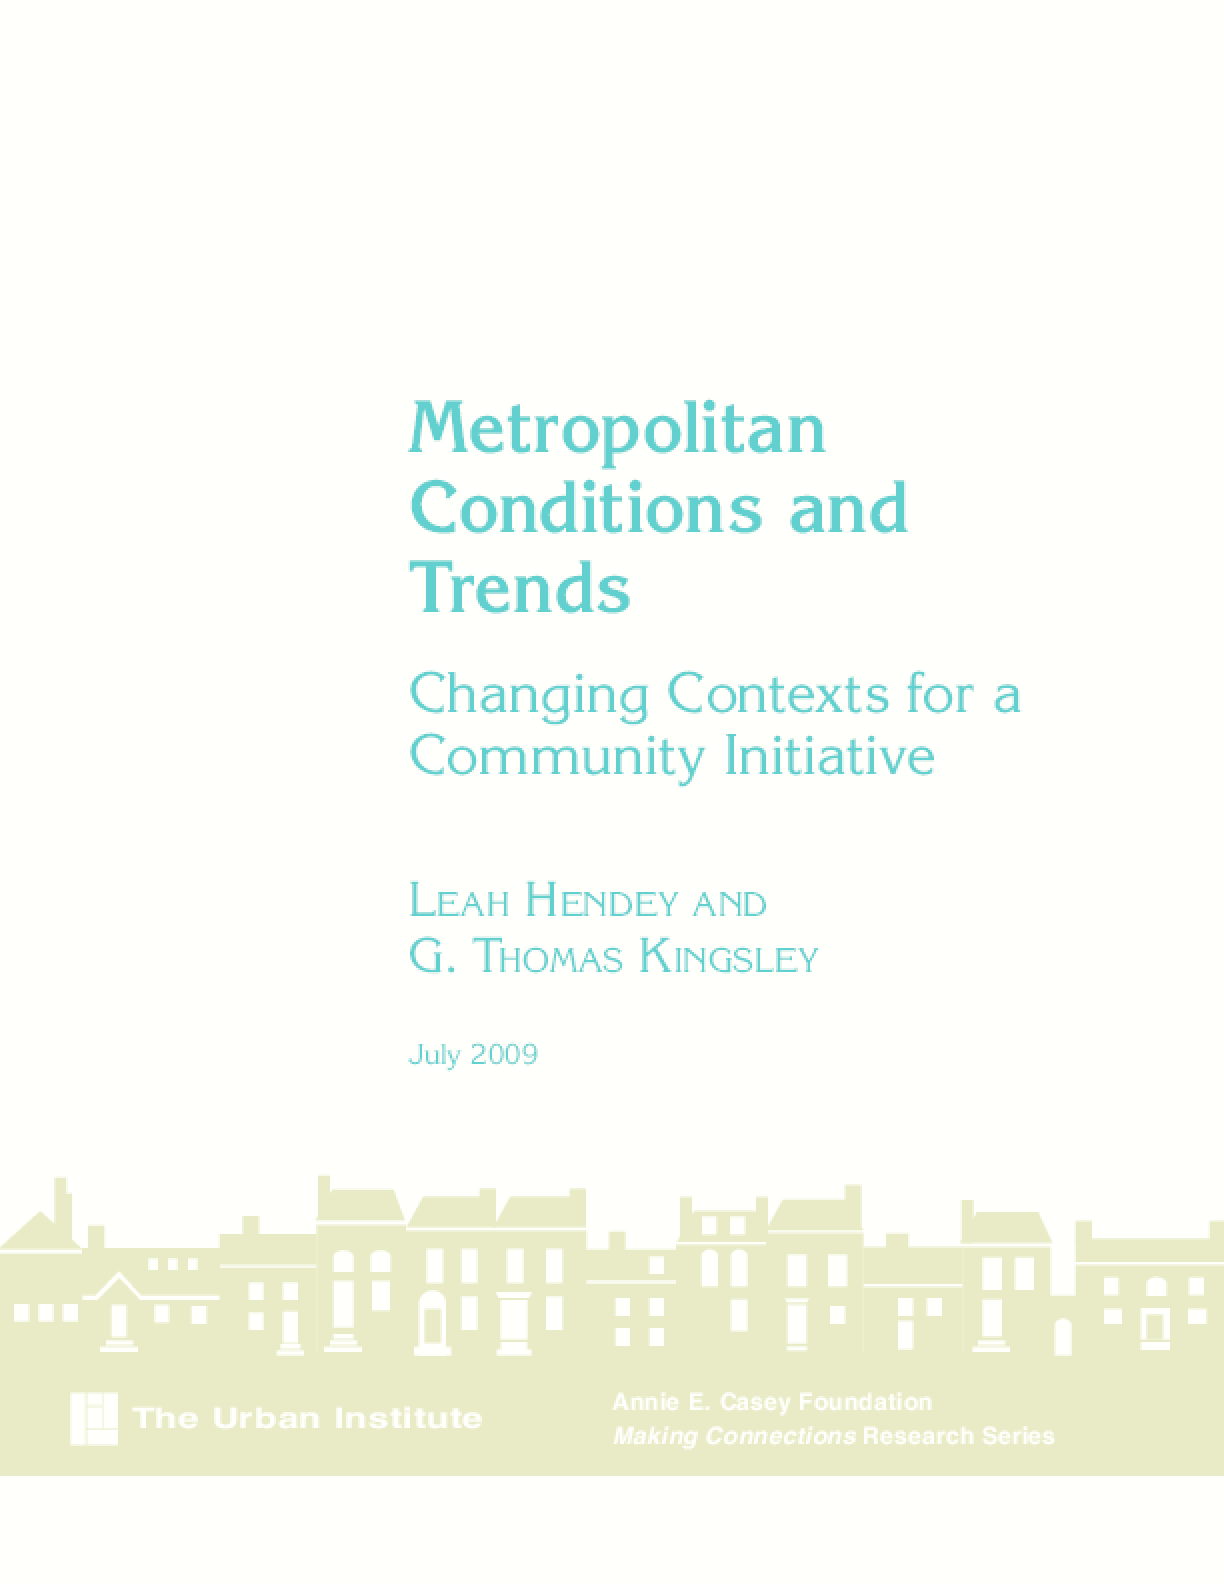 Metropolitan Conditions and Trends: Changing Contexts for a Community Initiative